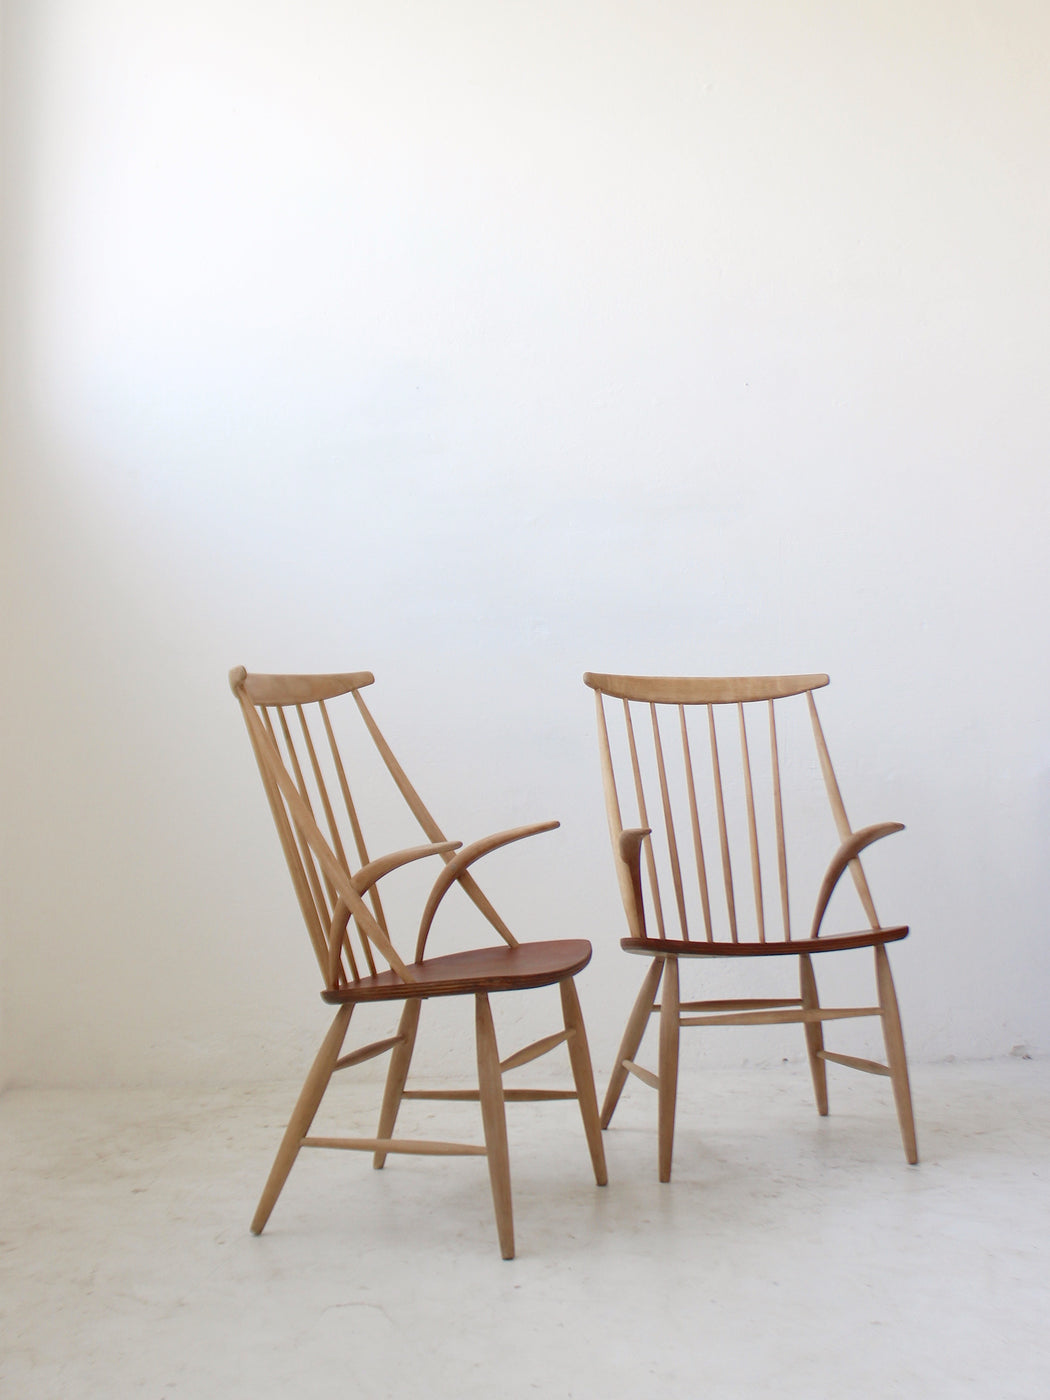 Illum Wikkelsø 'Spindle-Back' Chairs